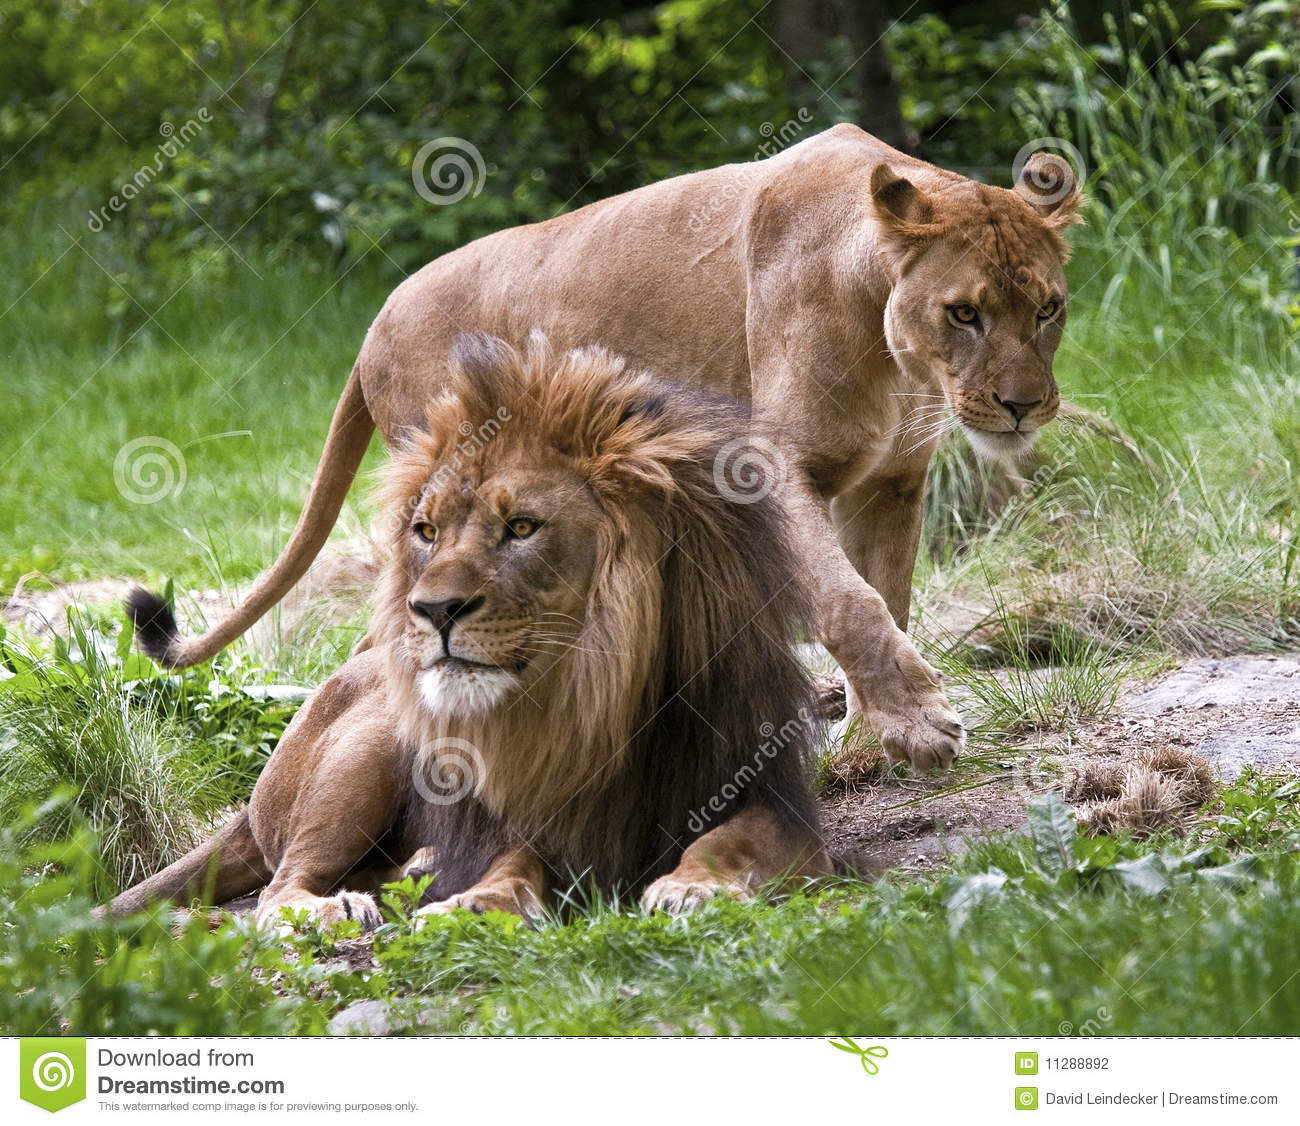 Mated Lions